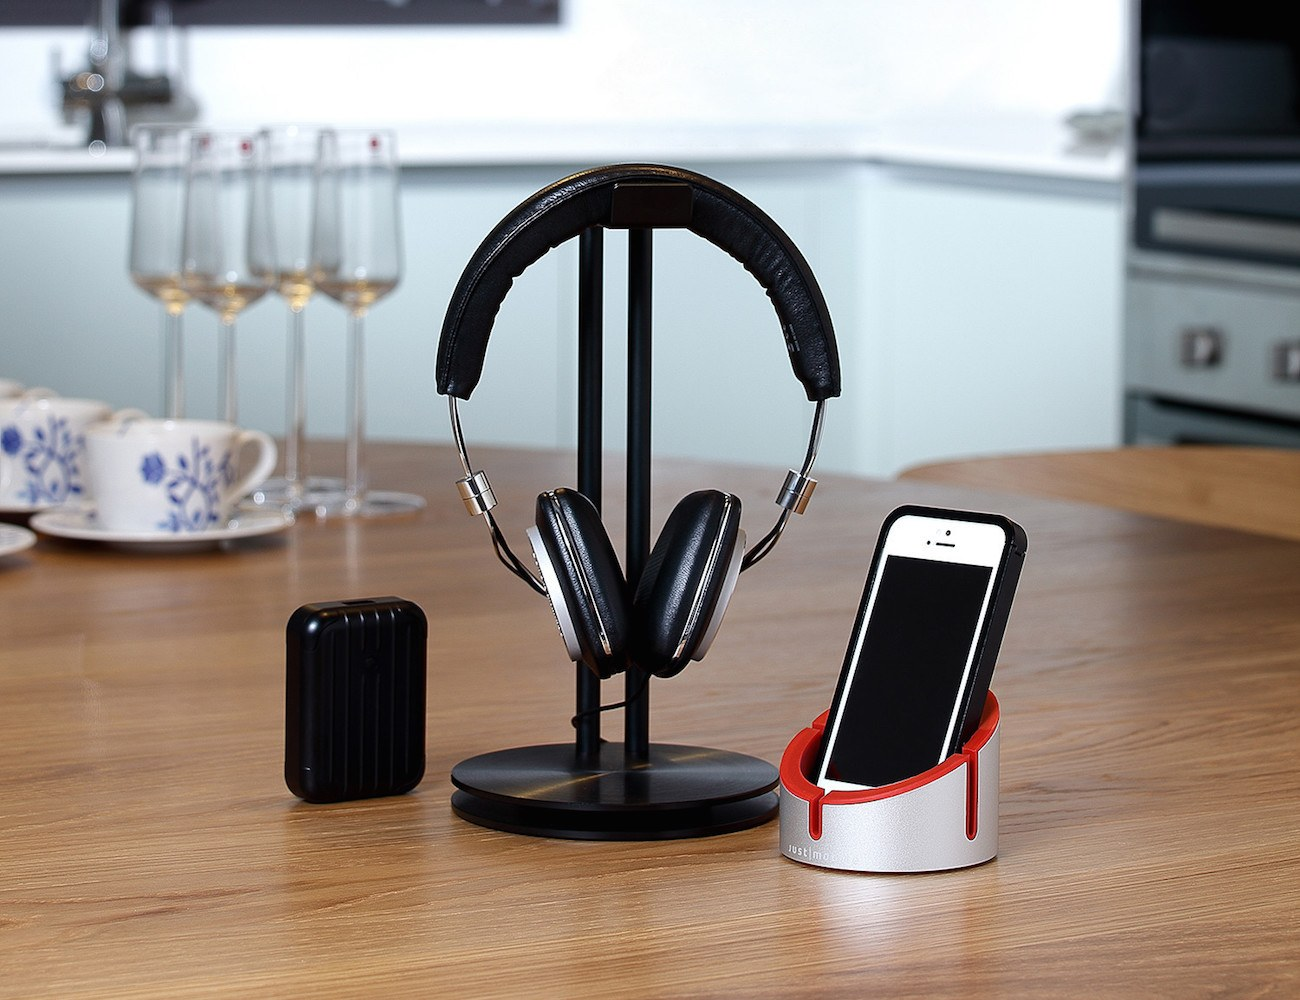 HeadStand – For Your Headphones By Just Mobile